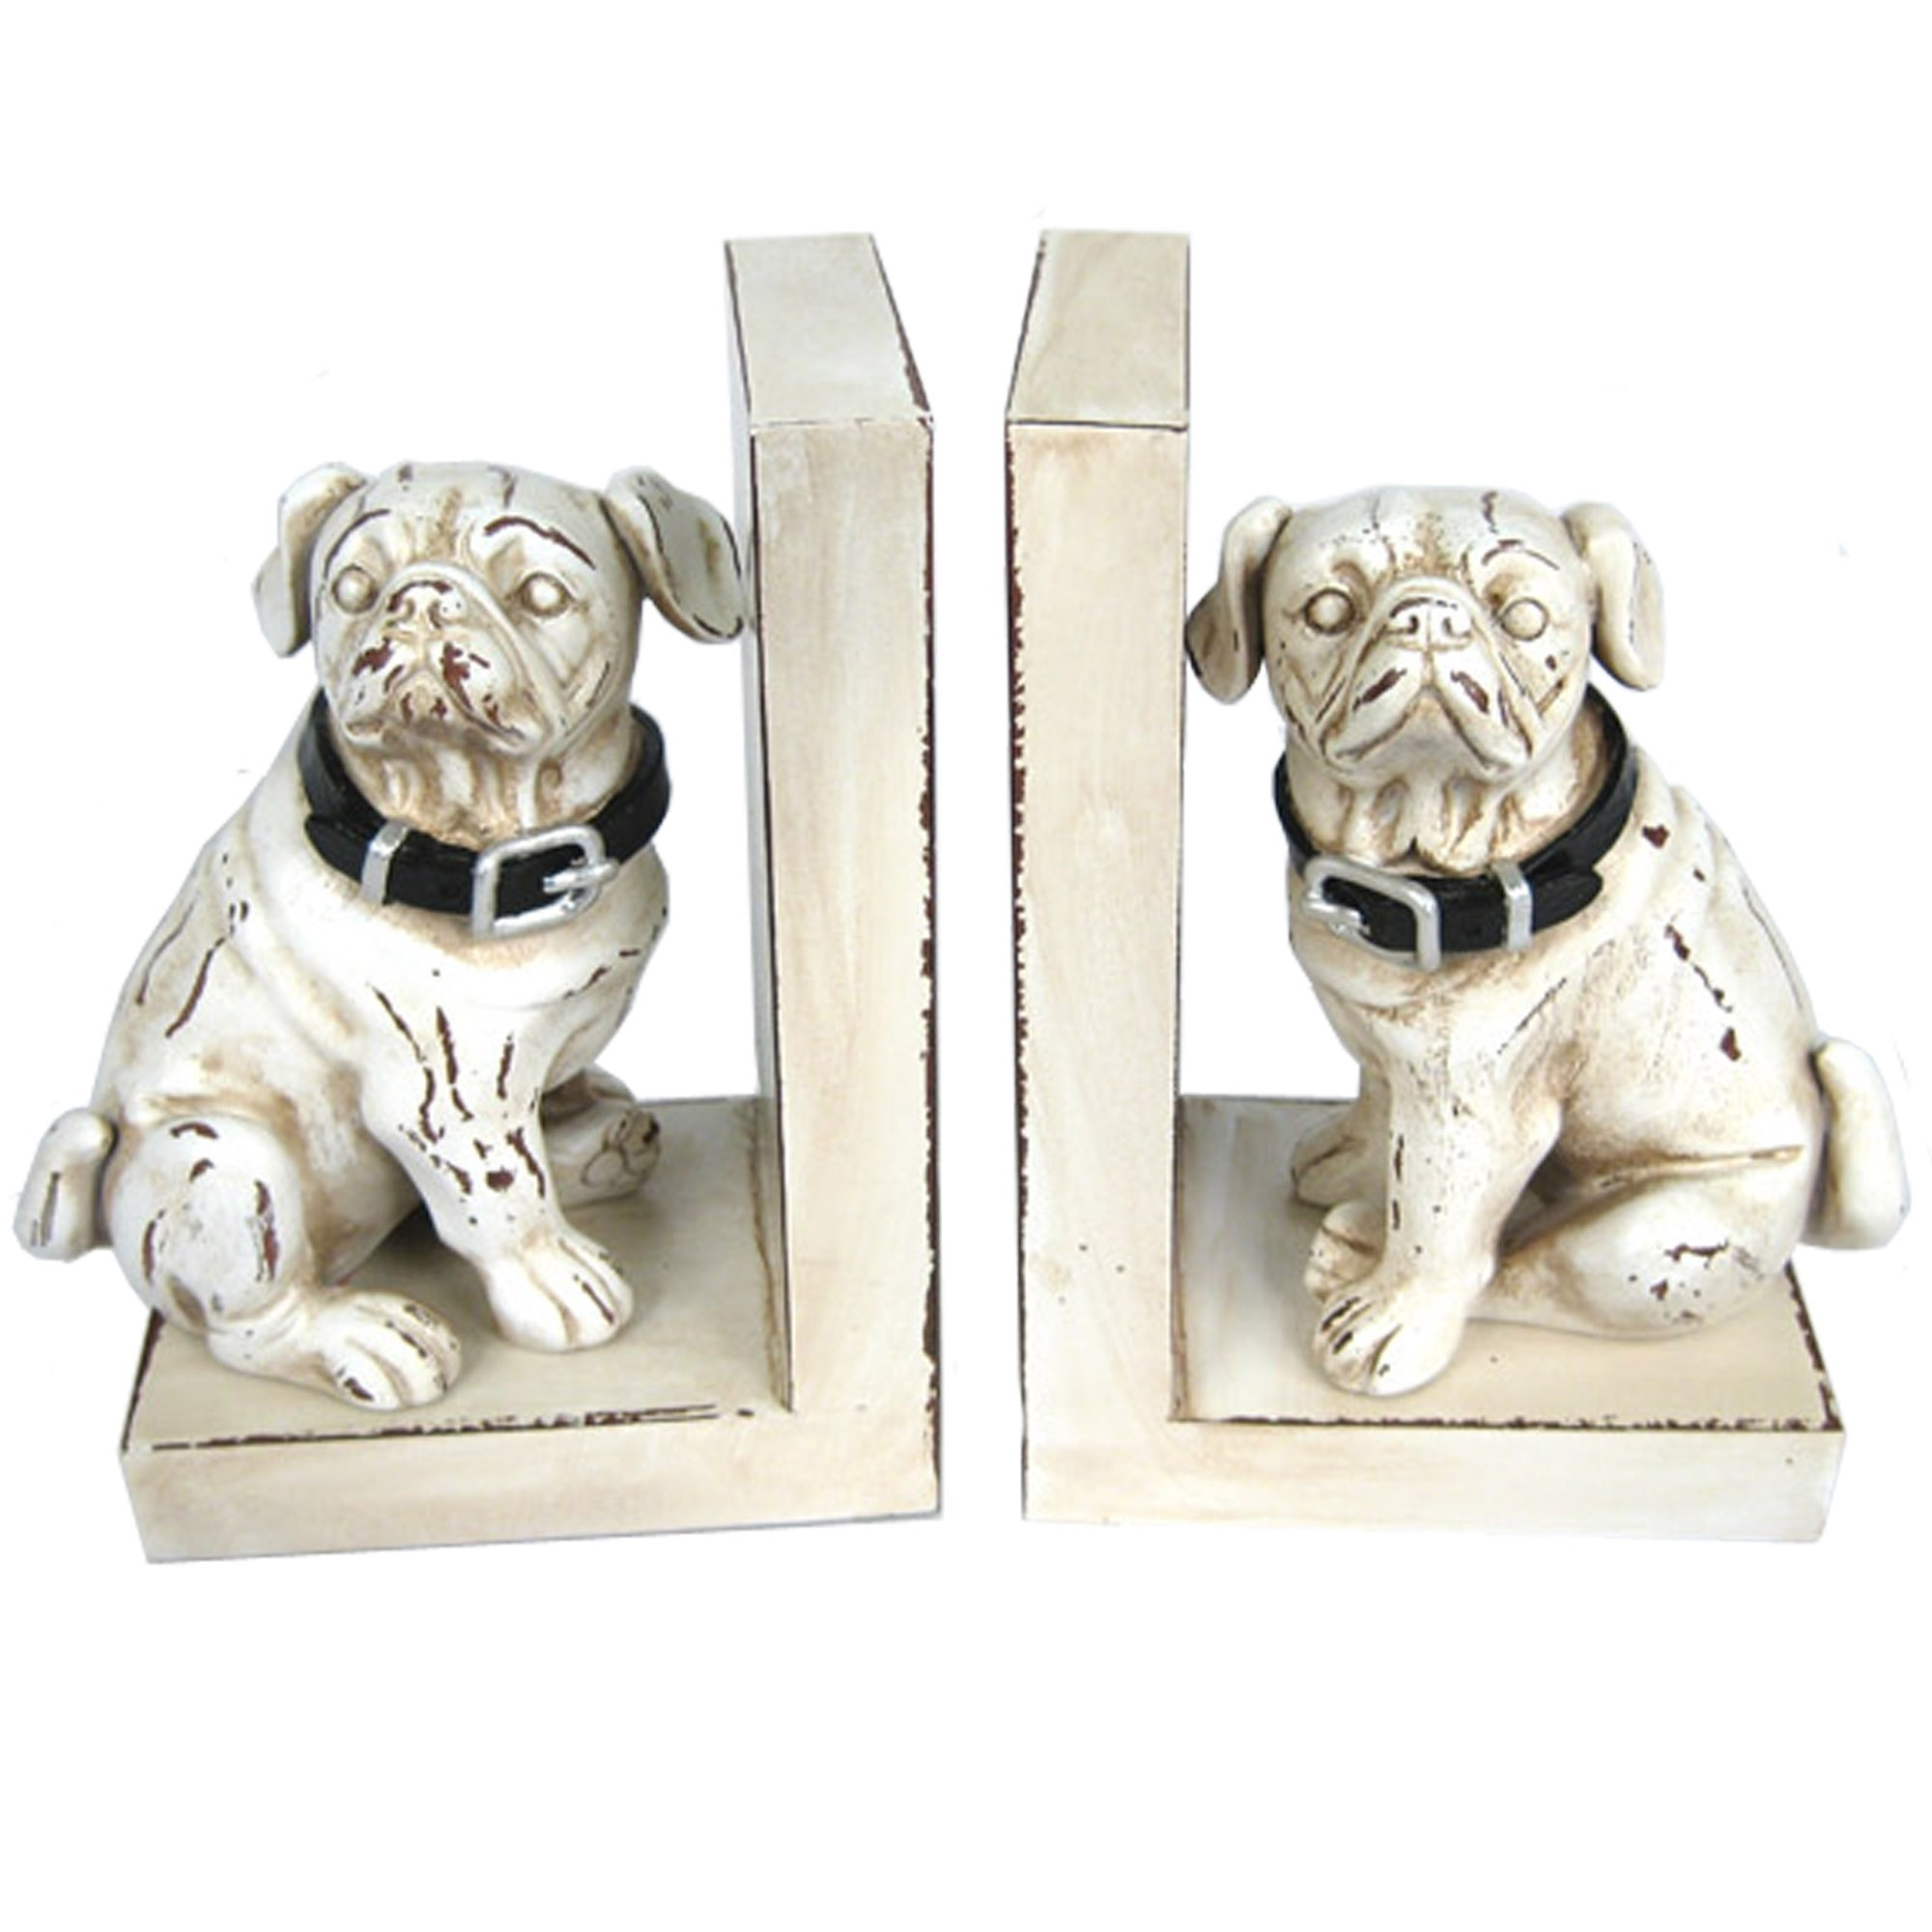 Dog Bookends - White